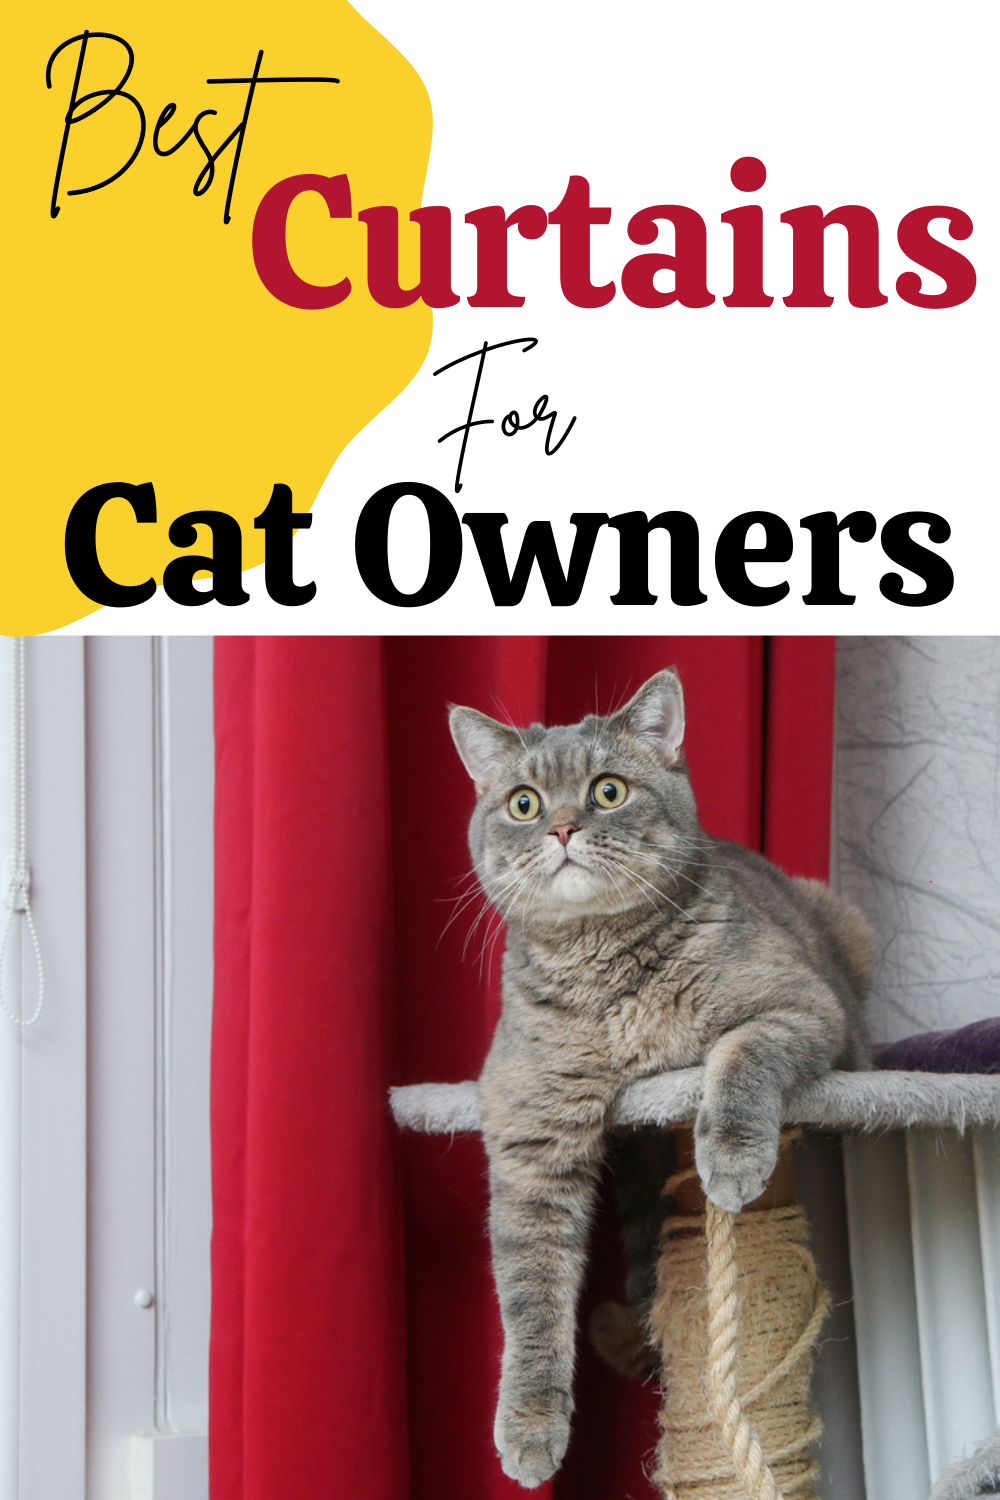 Cat Proof Curtains - Best Tips What To Look For